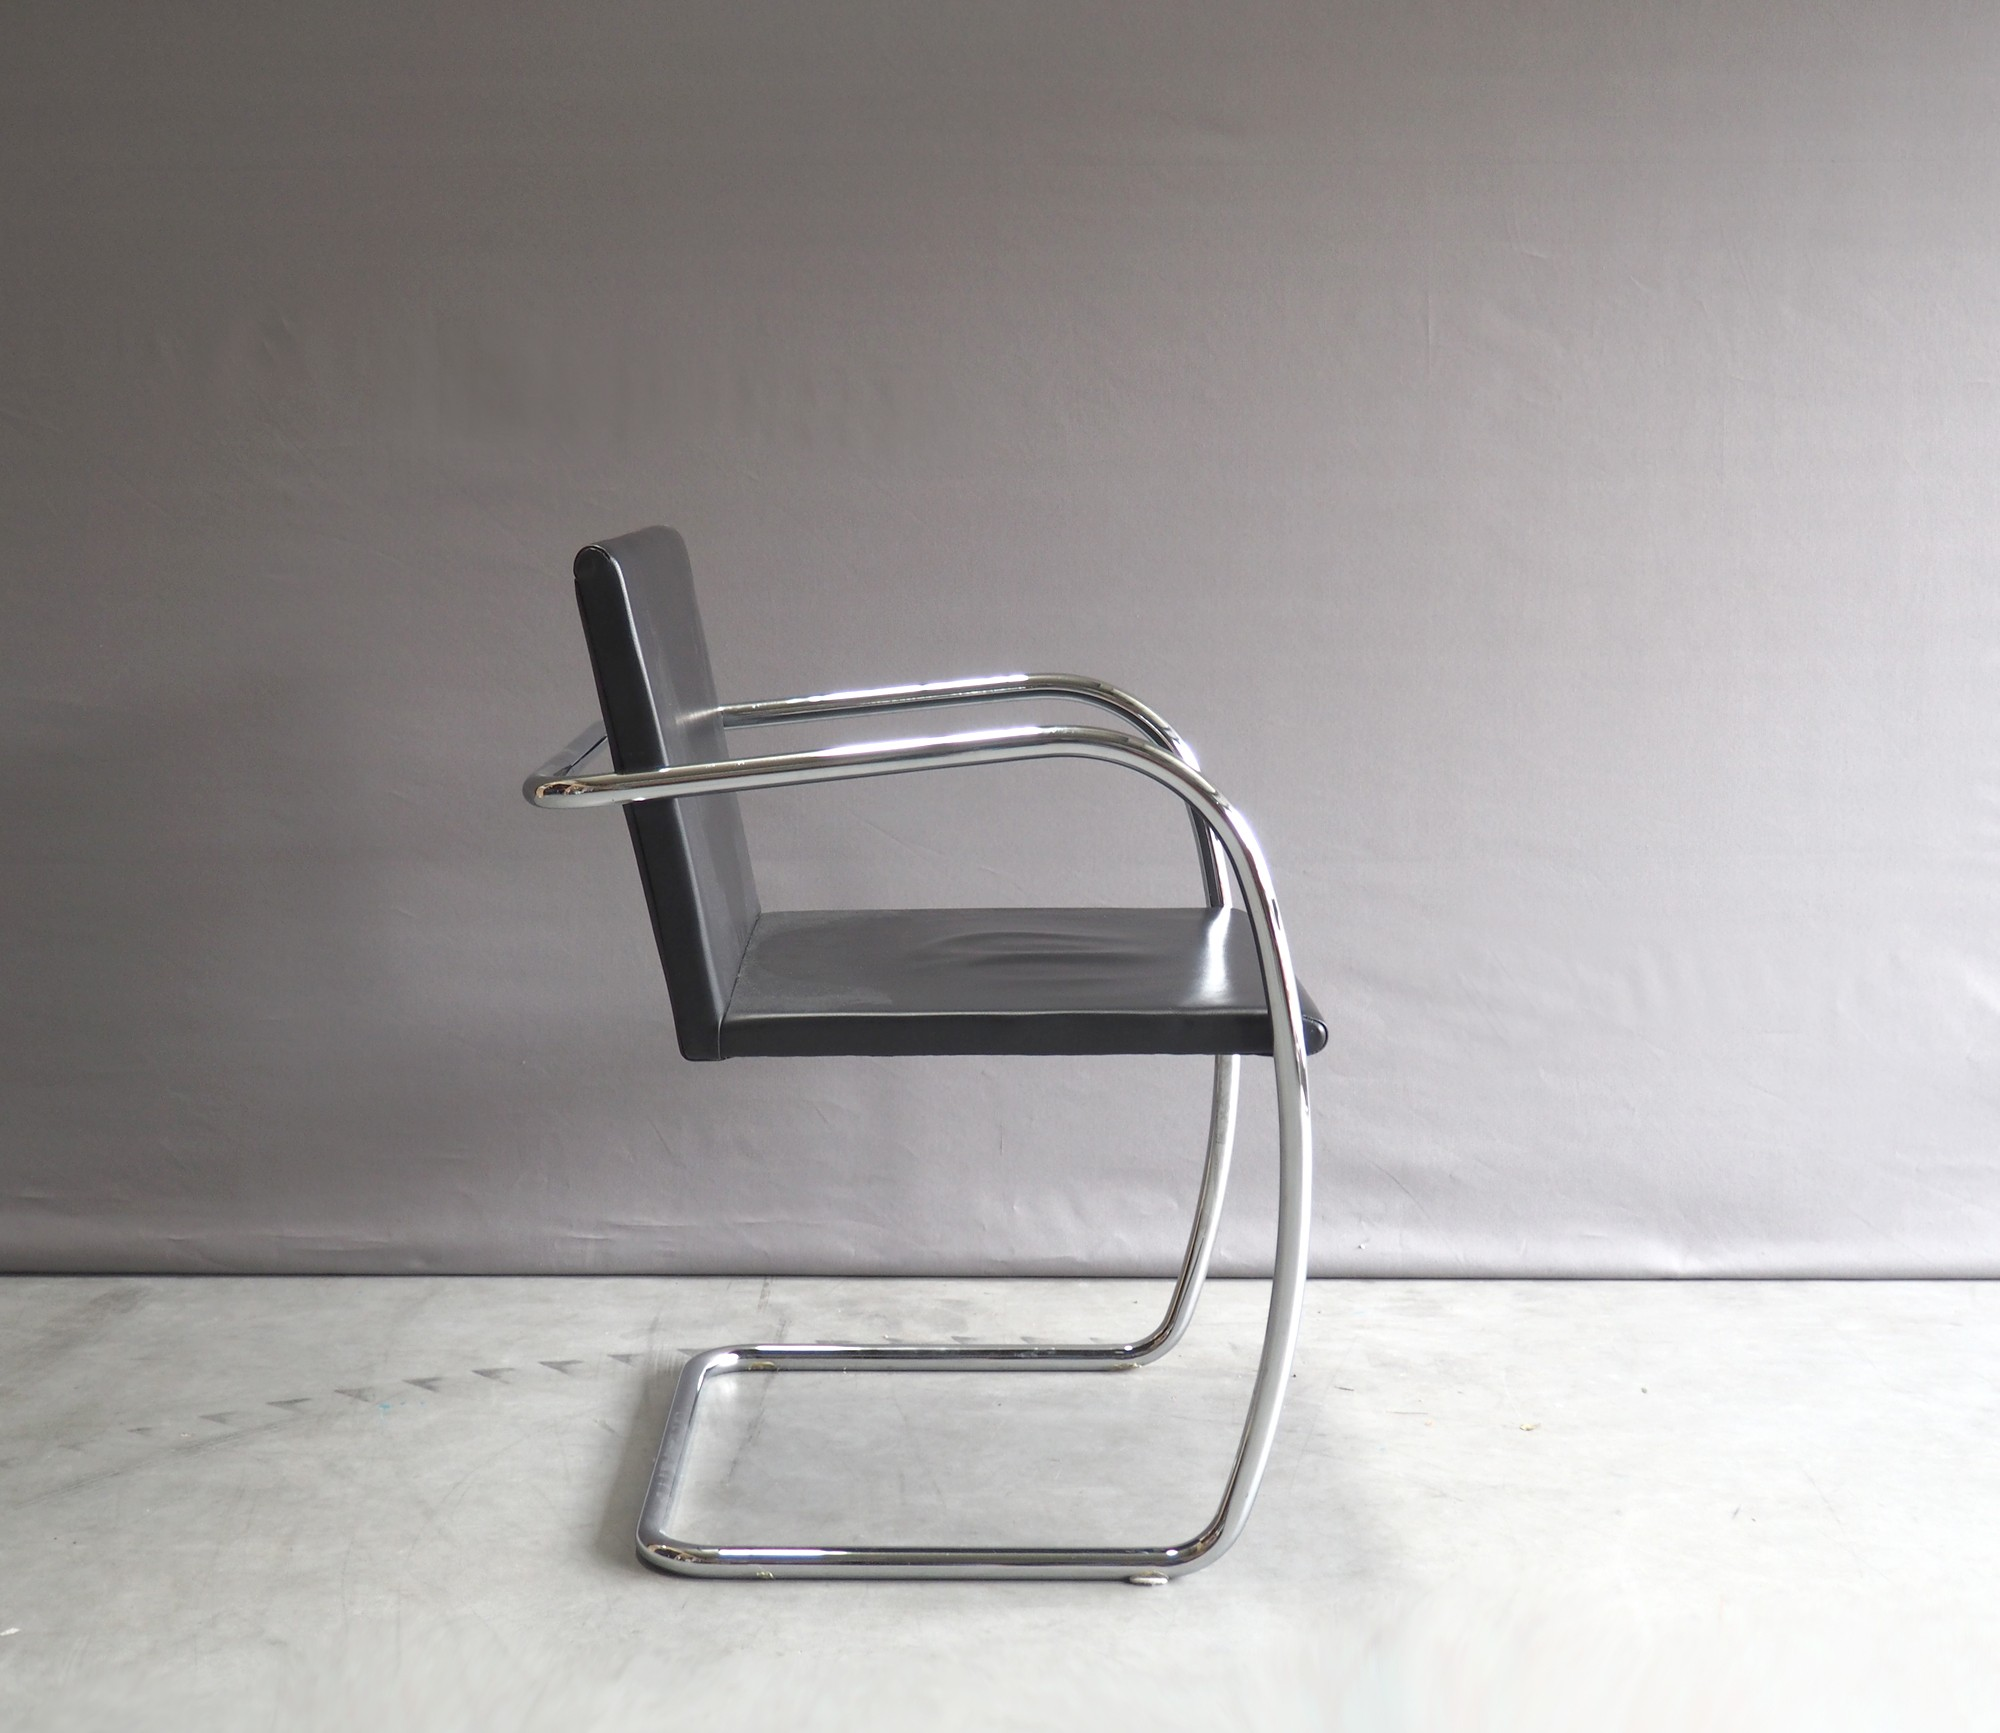 chair ludwig barcelona at mies der van rohe nest authentic shop uk furniture knoll designer browse co